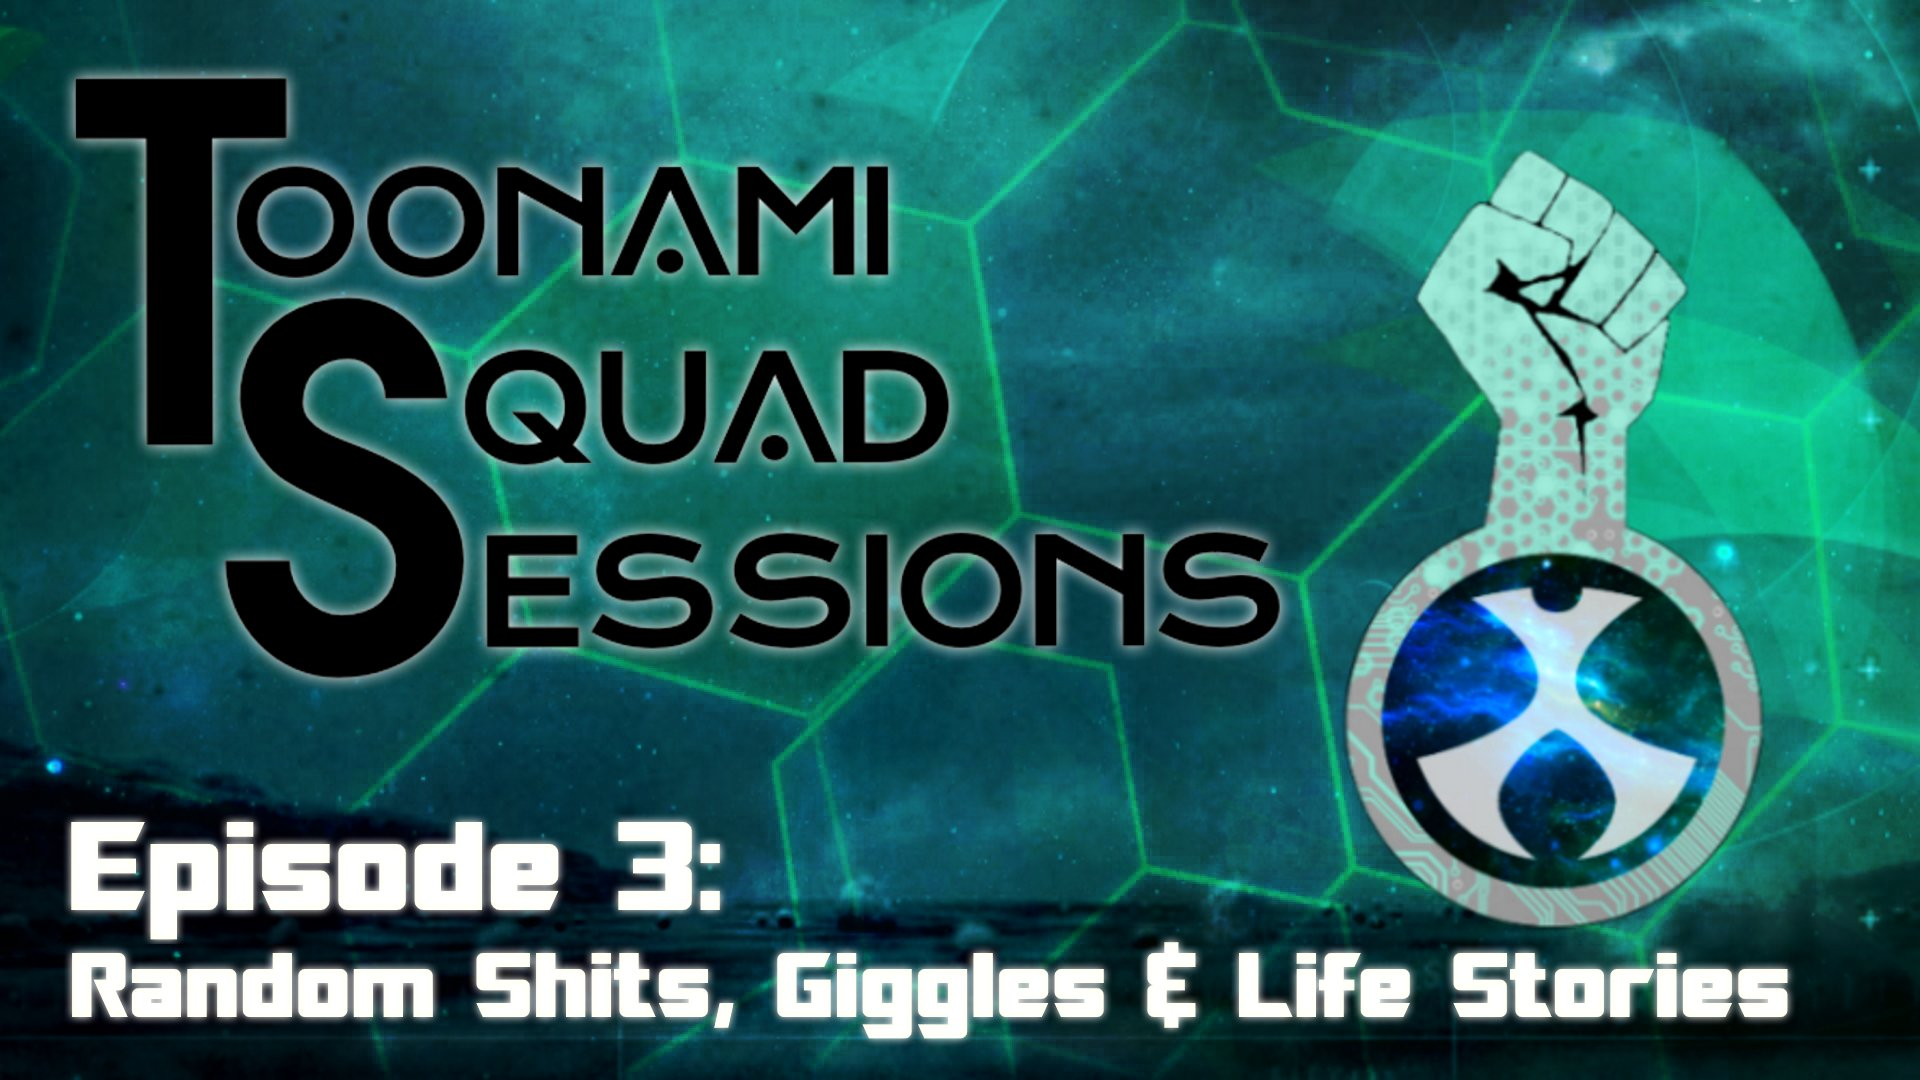 Toonami Squad Sessions Episode 3: Random Shits, Giggles & Life Stories